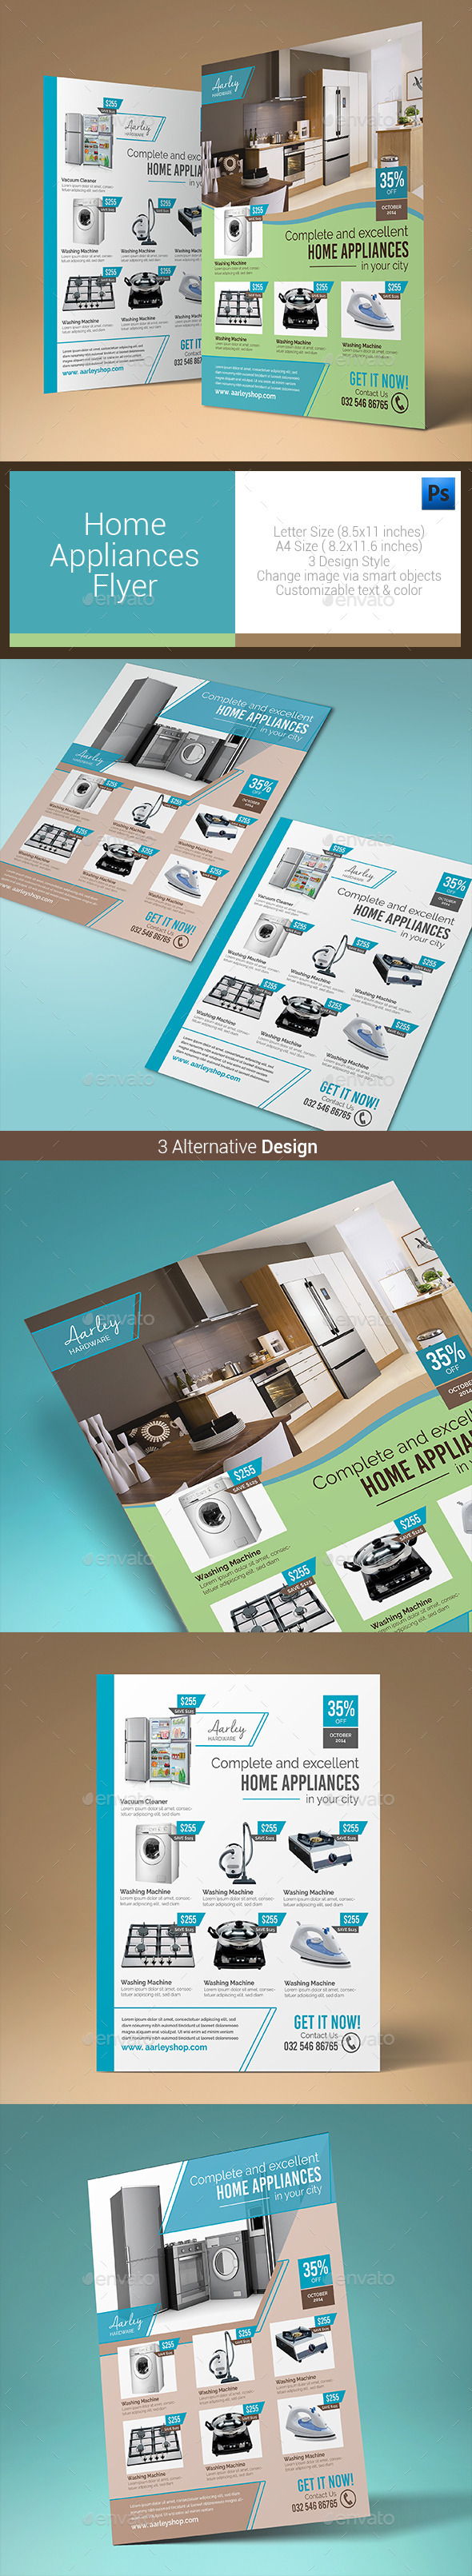 GraphicRiver Home Appliances Flyer 10583837